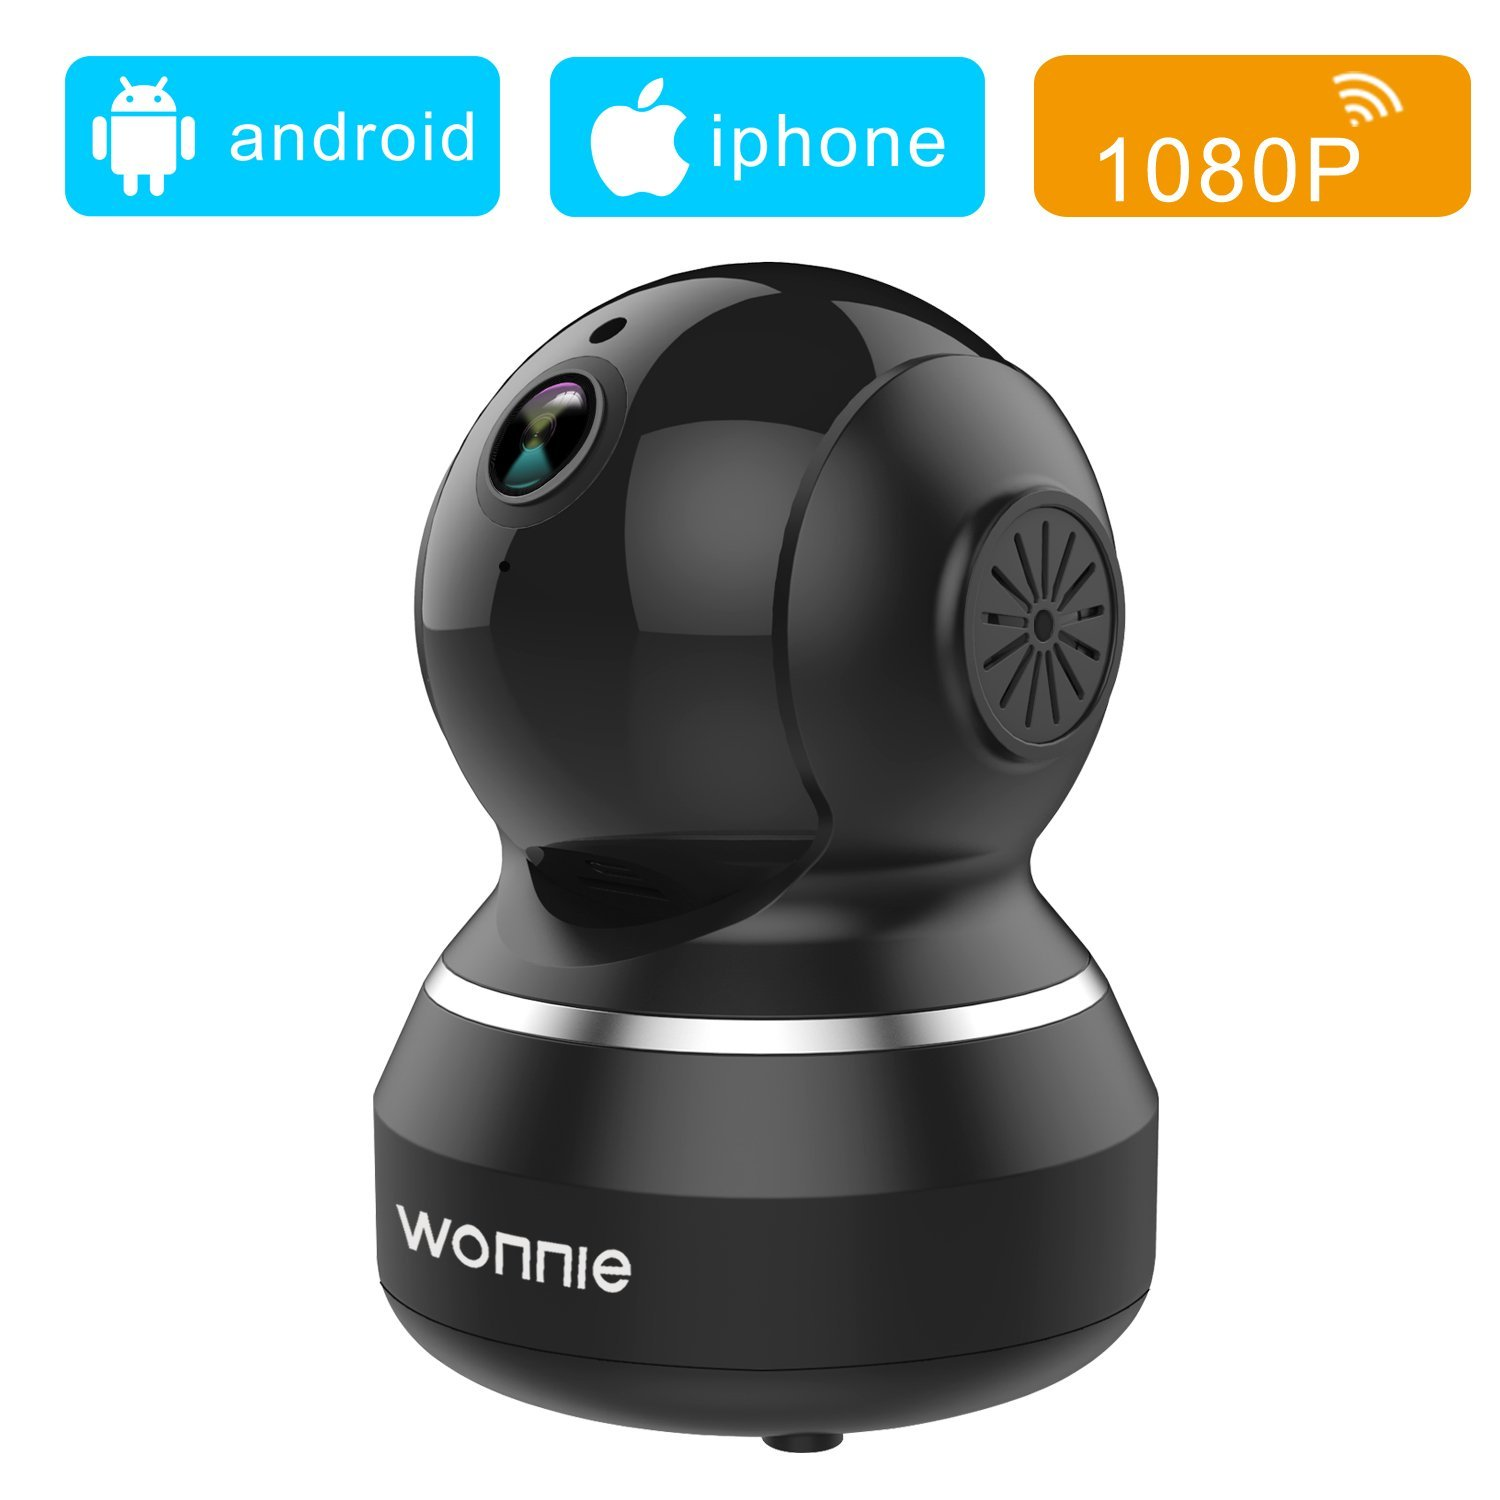 WONNIE 1080P HD WiFi IP Camera Wireless Indoor Camera with 2-Way Audio, Night Vision and Motion Detection, Home Security Surveillance Pan/Tilt/Zoom Monitor for Baby/Elder/Pet (Black)